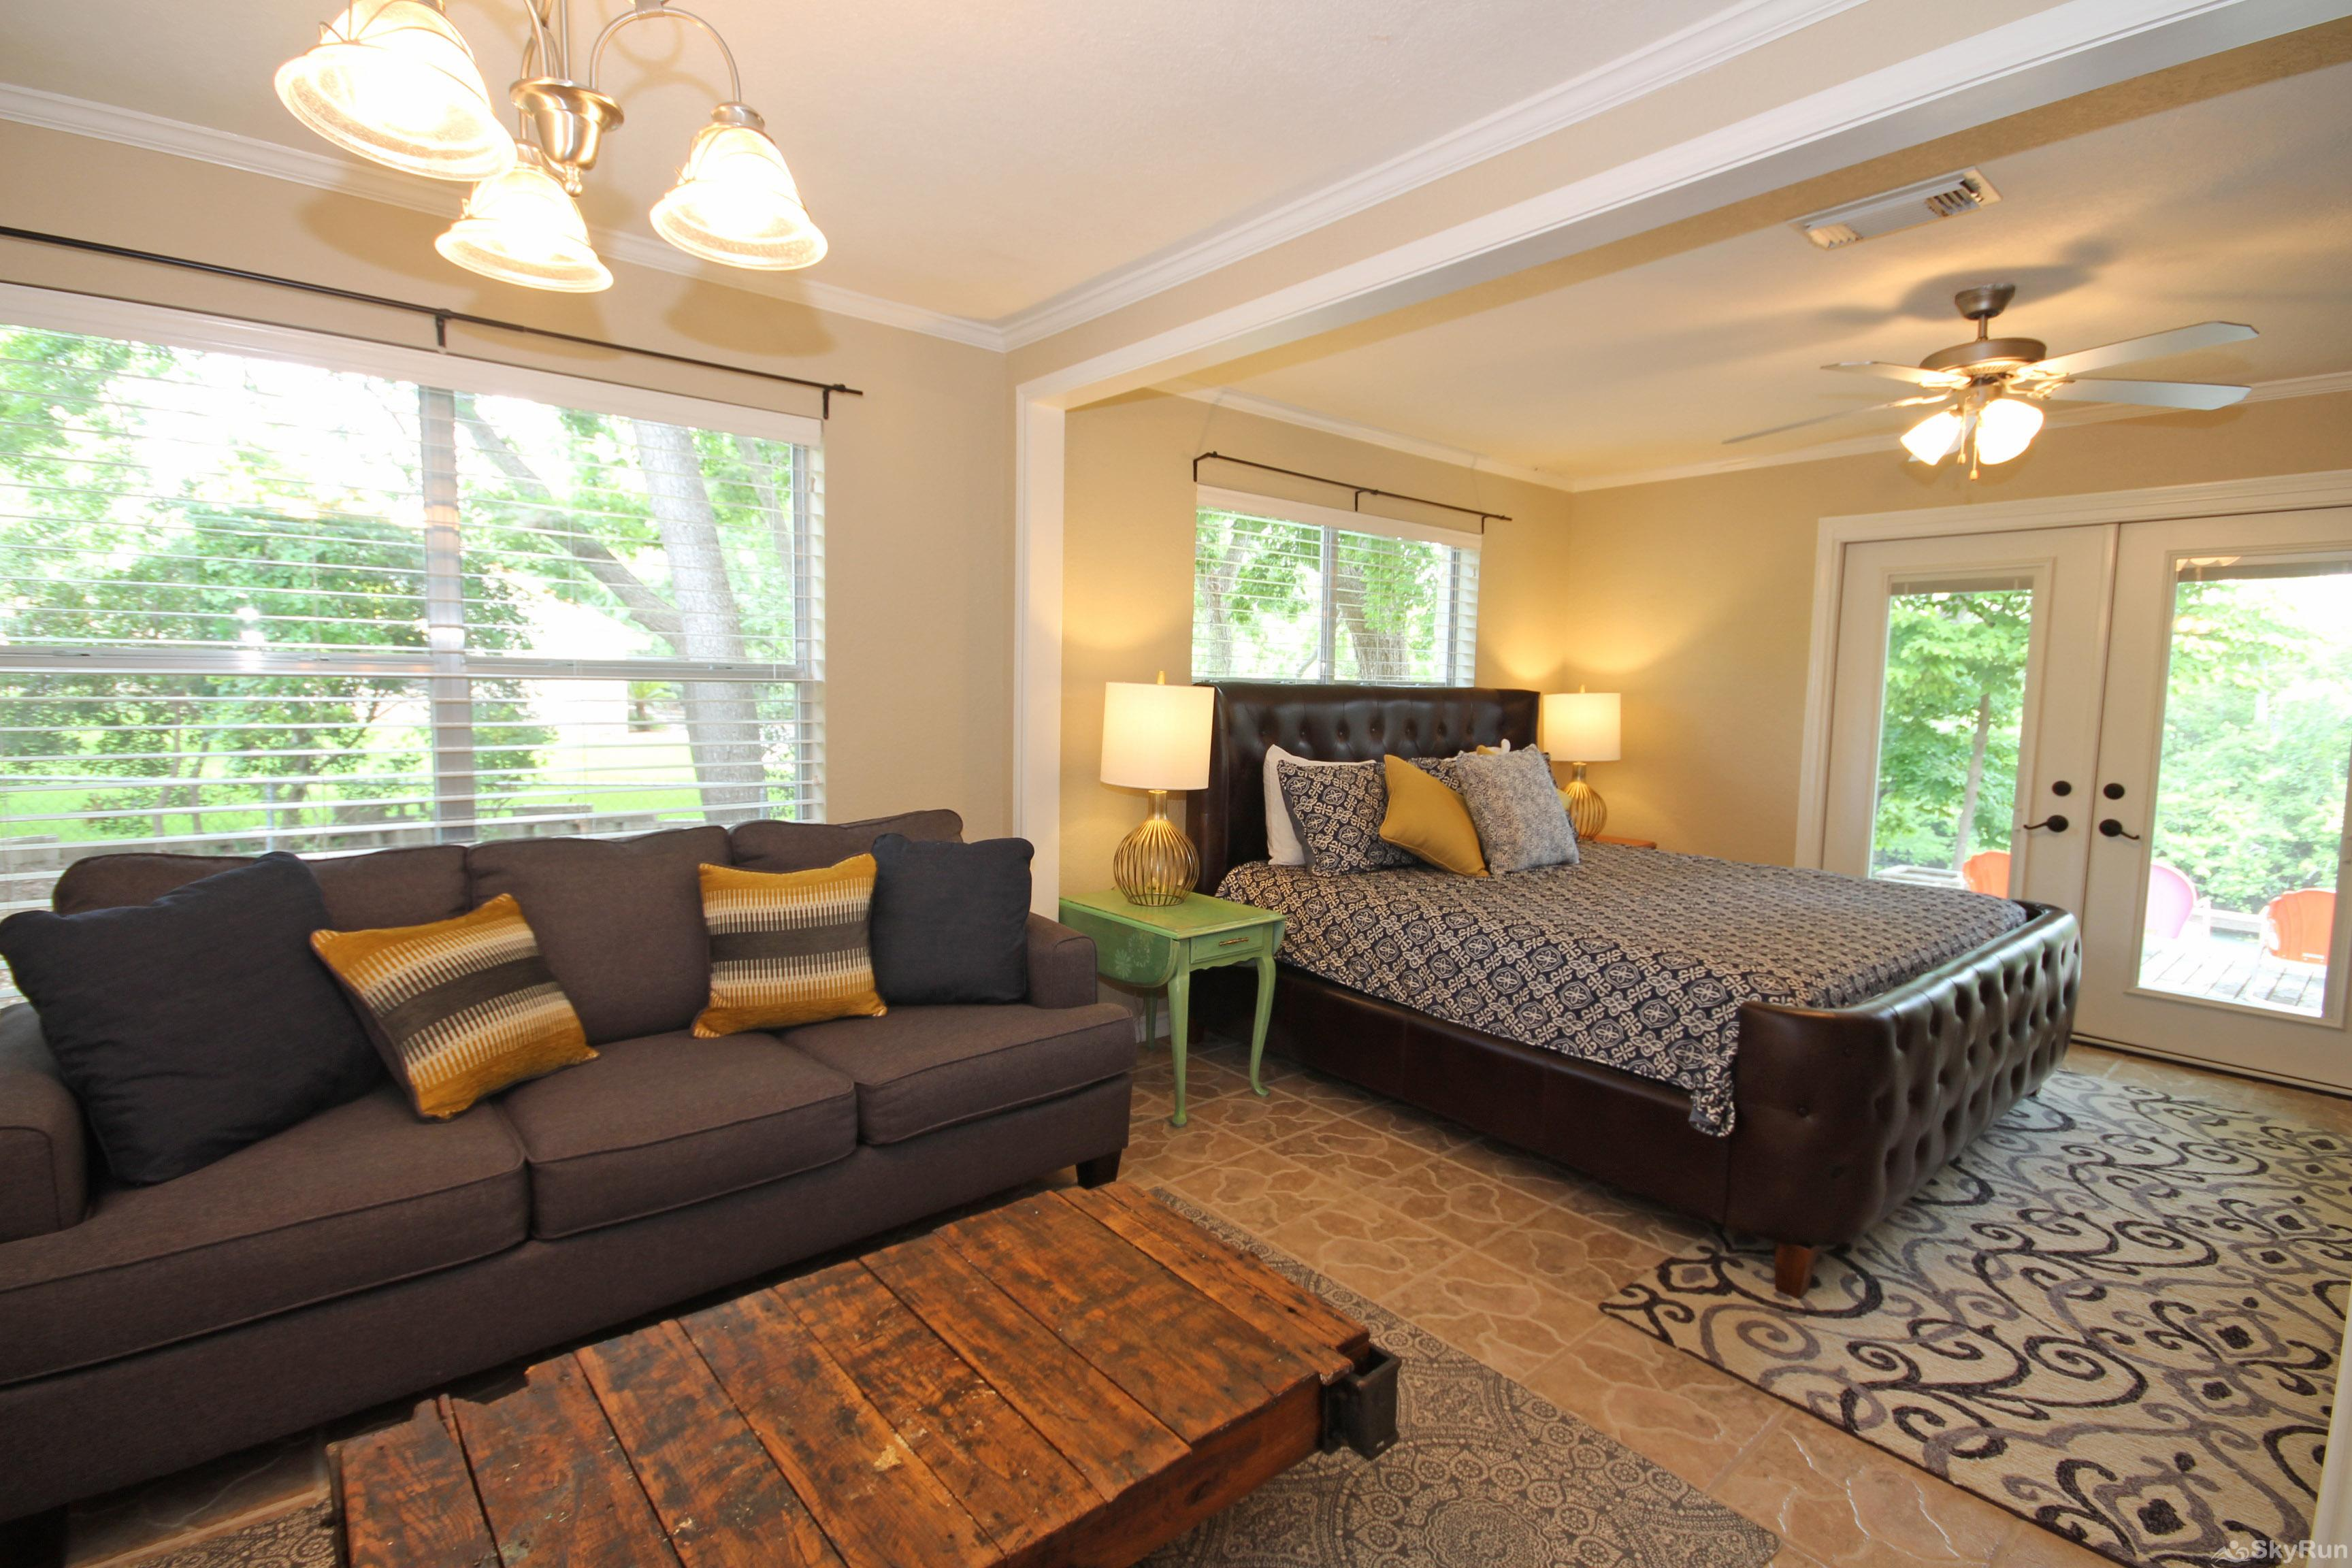 MAVERICK'S RIVER HAUS & GUEST HAUS Large Master Bedroom with King Bed and Queen Sleeper Sofa